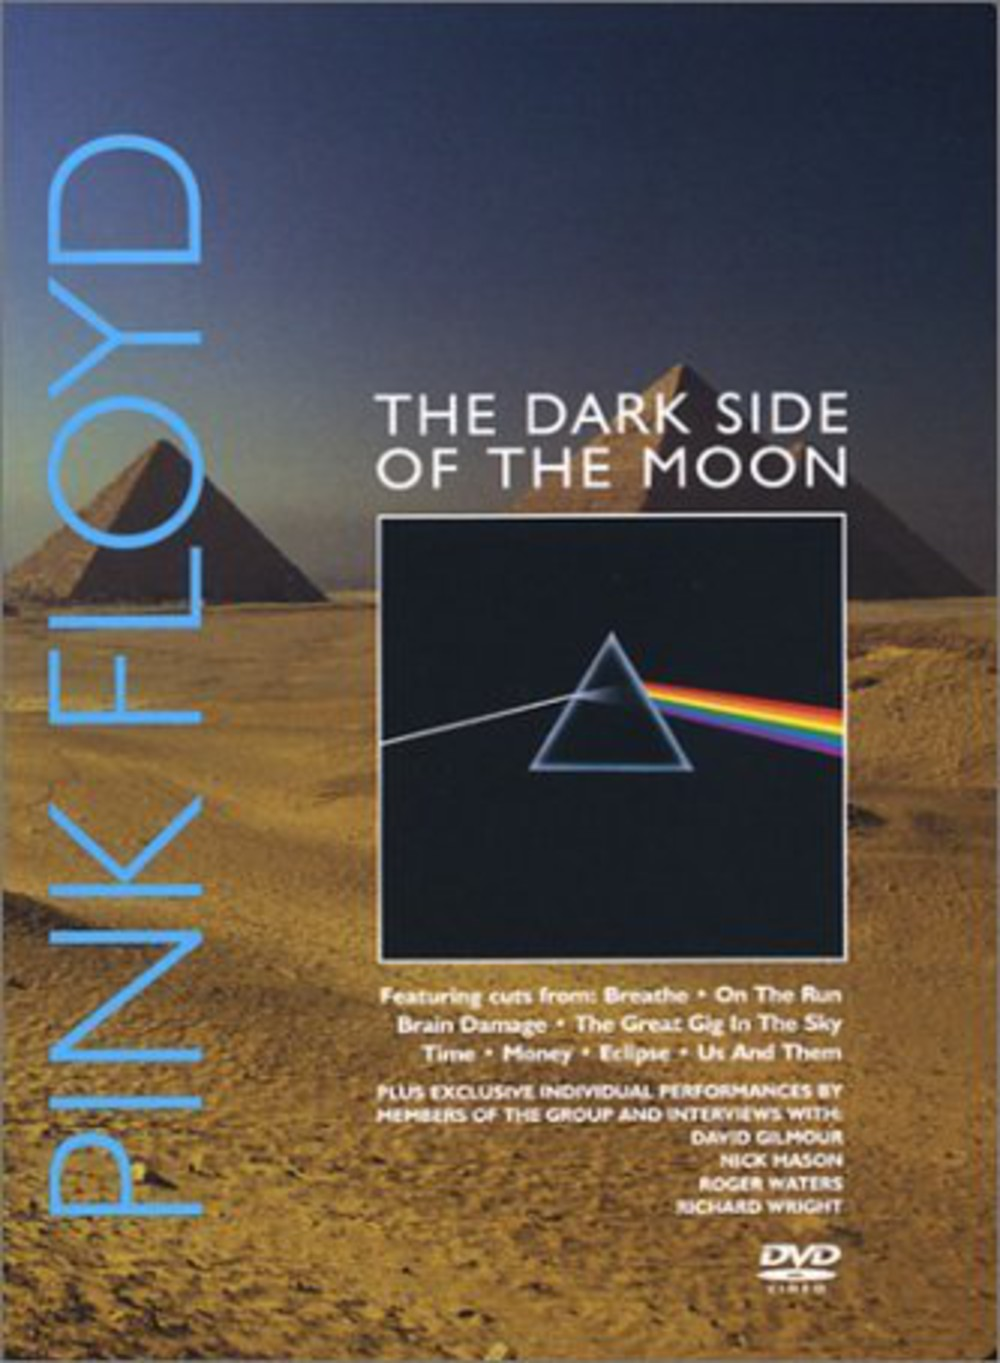 PINK FLOYD - THE DARK SIDE OF THE MOON (DVD)